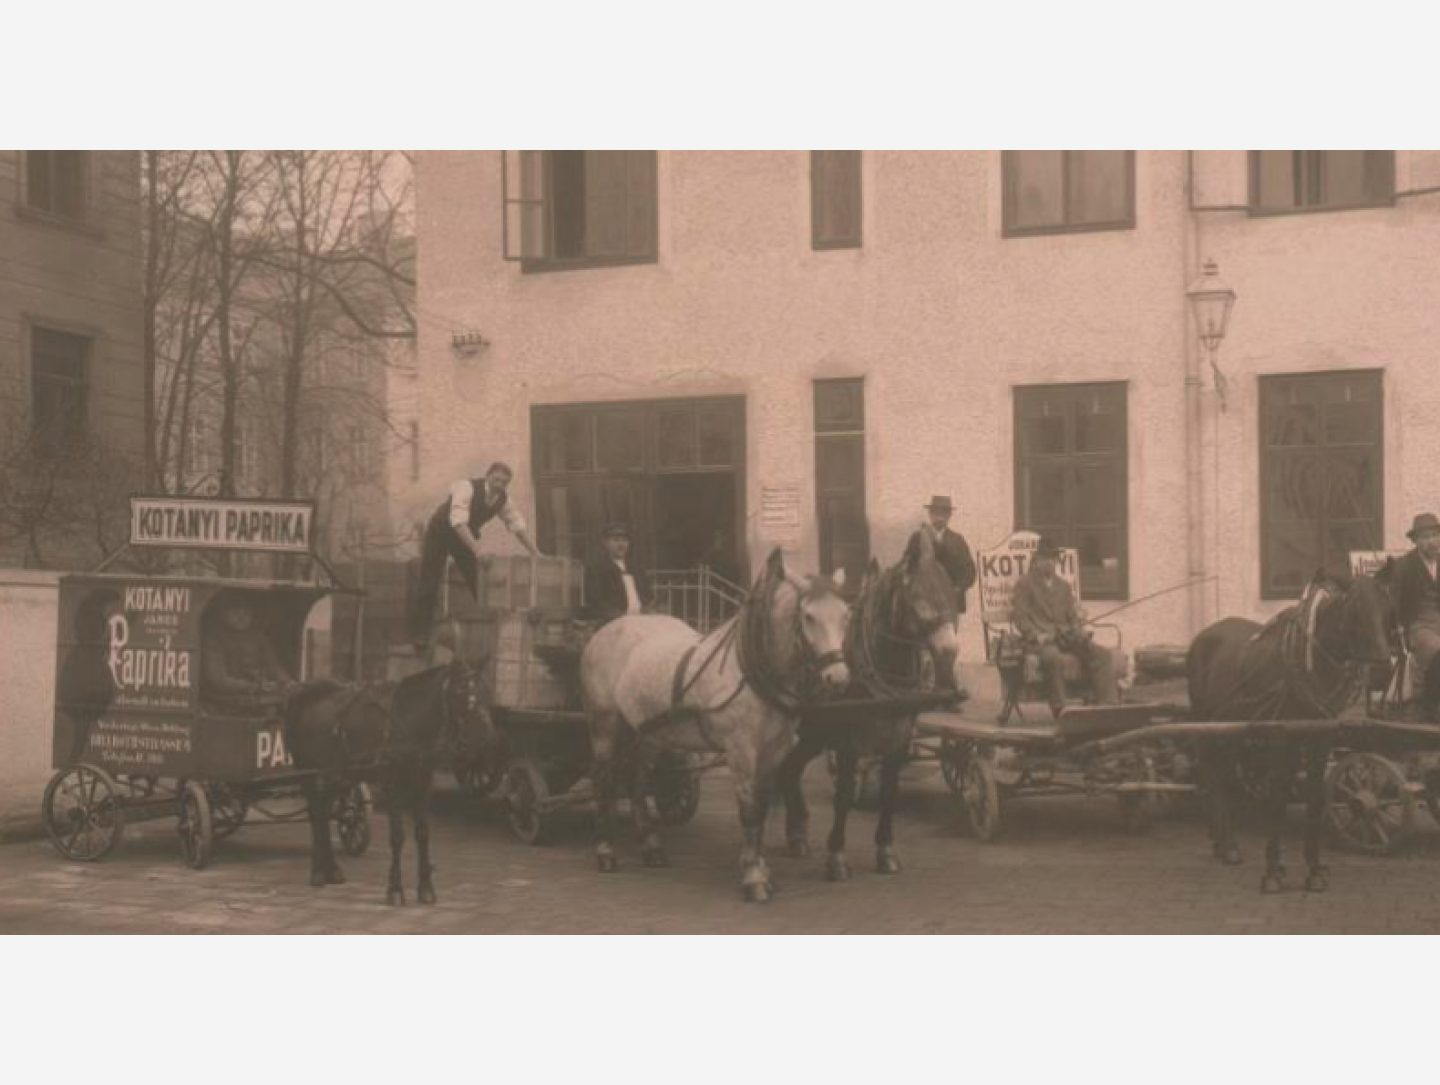 Black-and-white photograph: Paprika deliveries by horse-drawn carriage in 1881